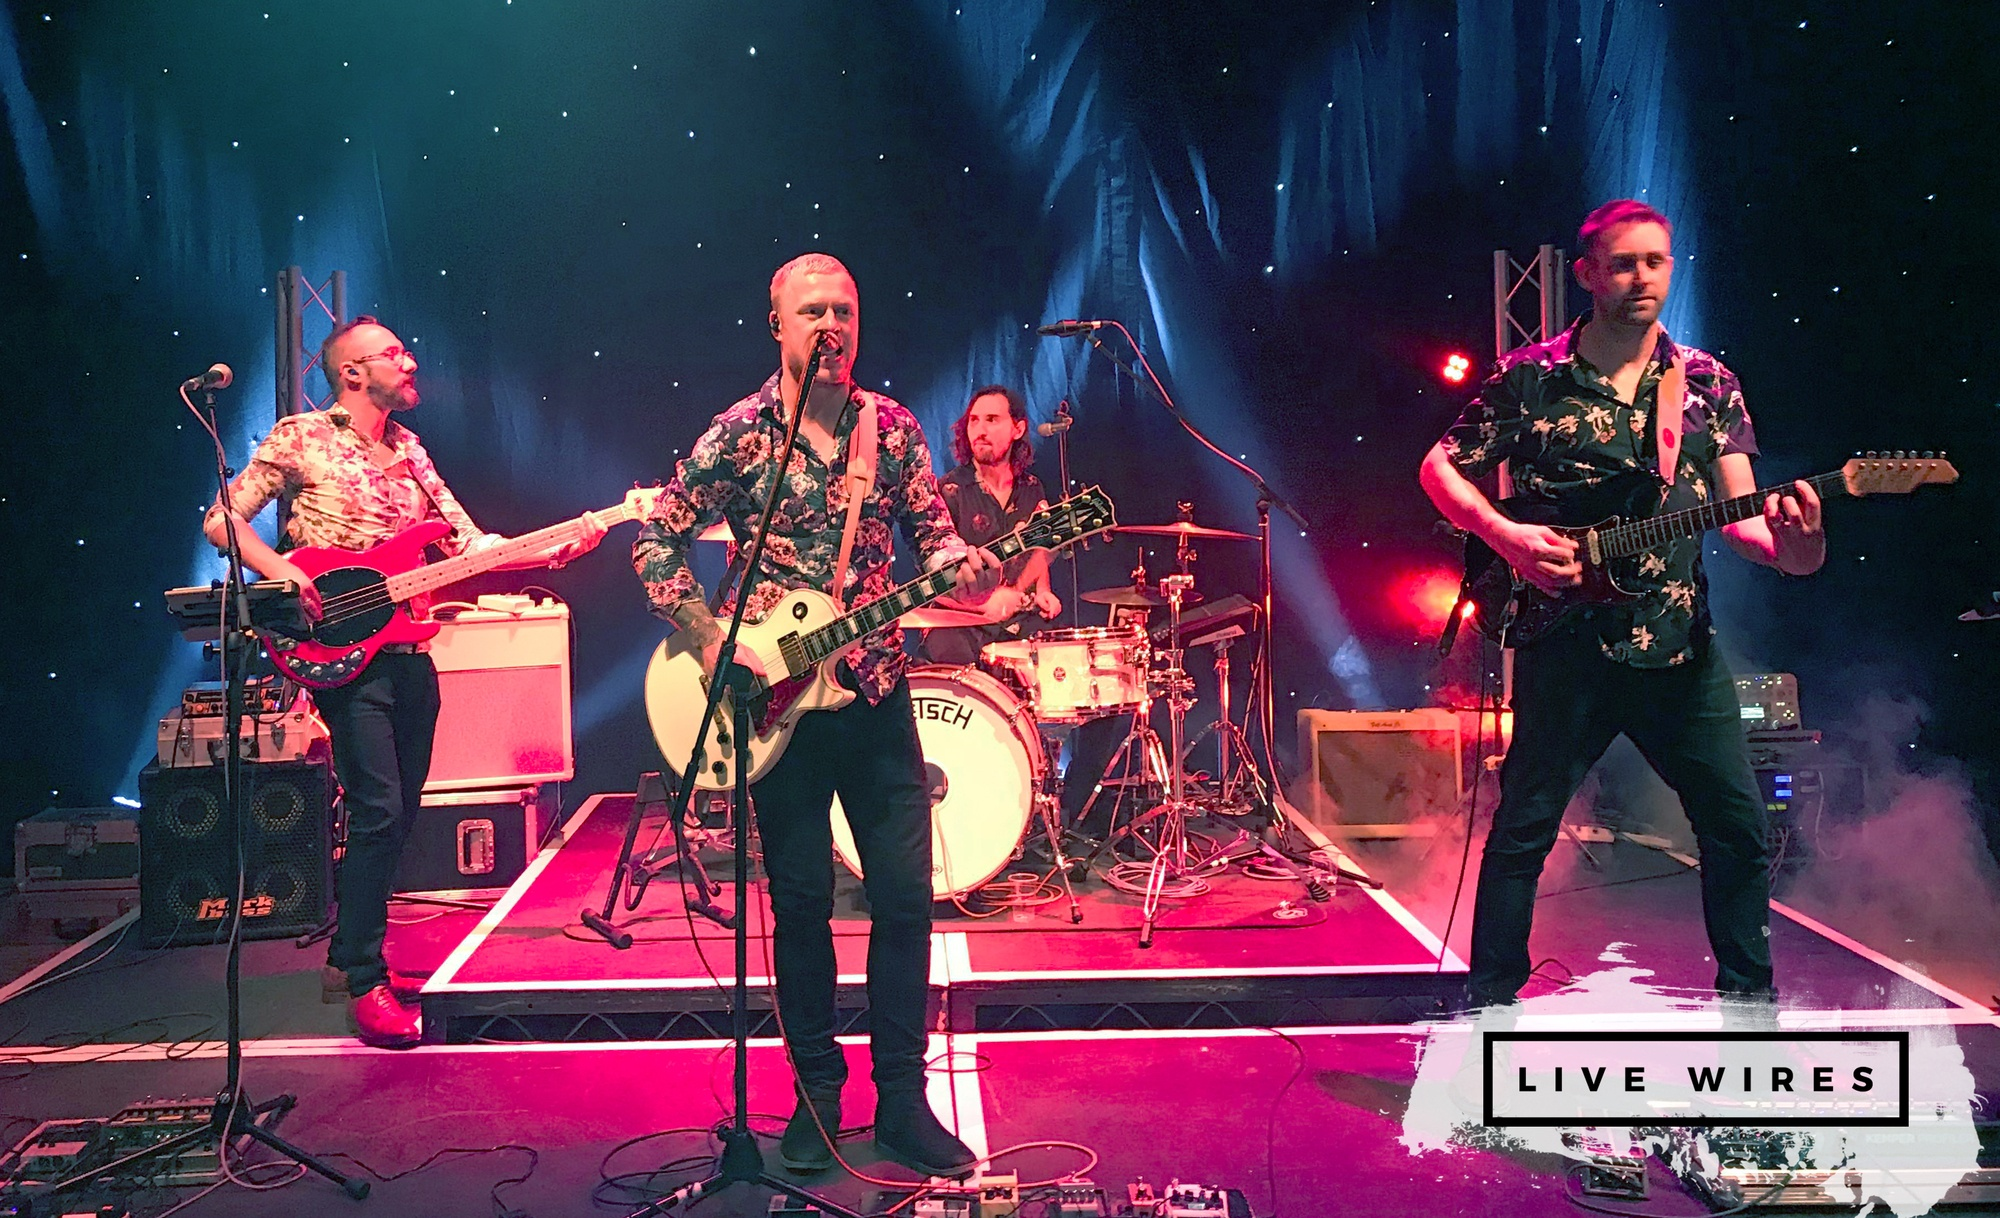 Live Wires review - Wedding in Shropshire by David Tansley - Alive ...